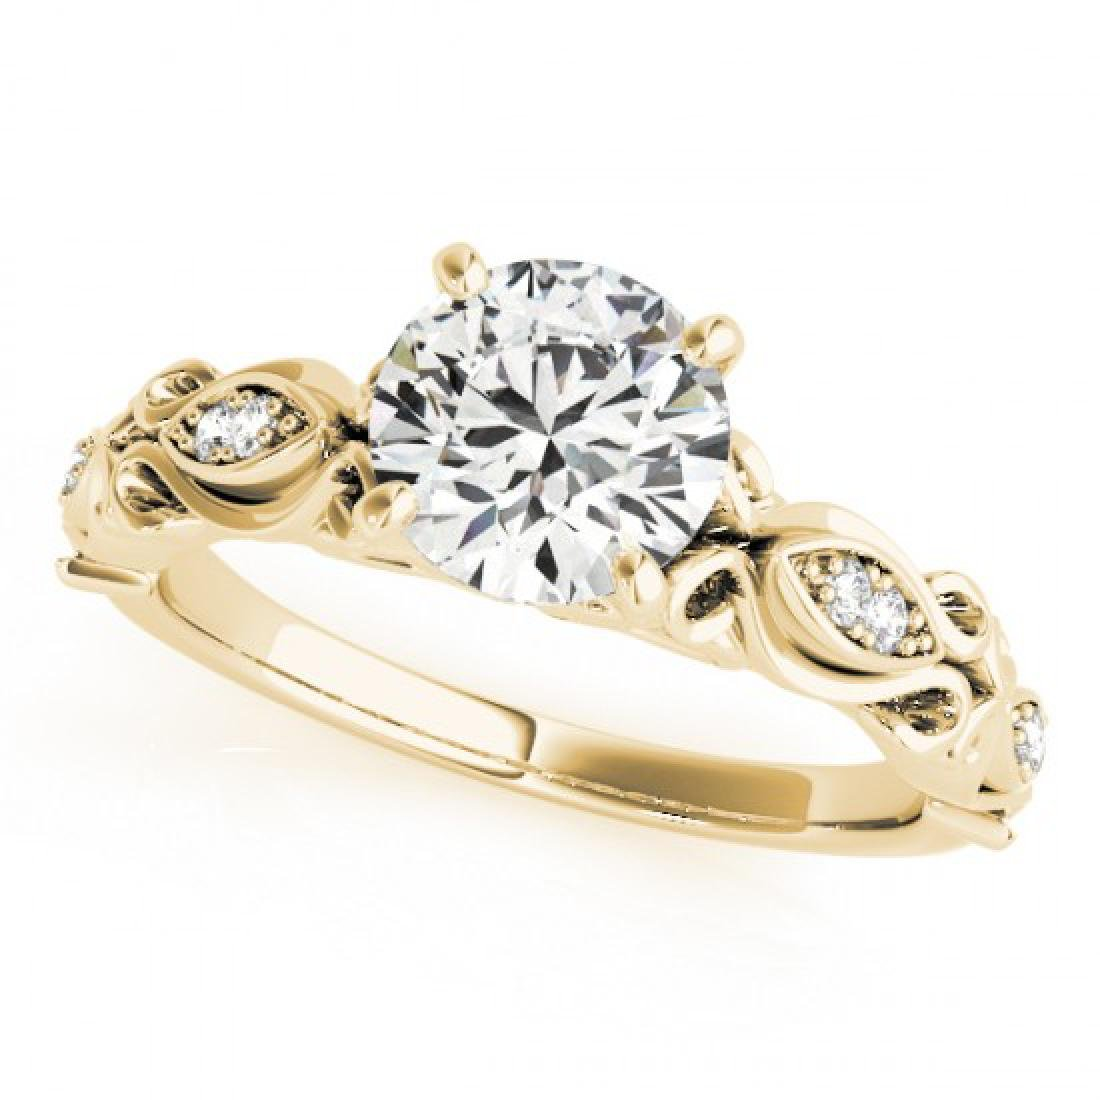 1.1 CTW Certified VS/SI Diamond Solitaire Antique Ring